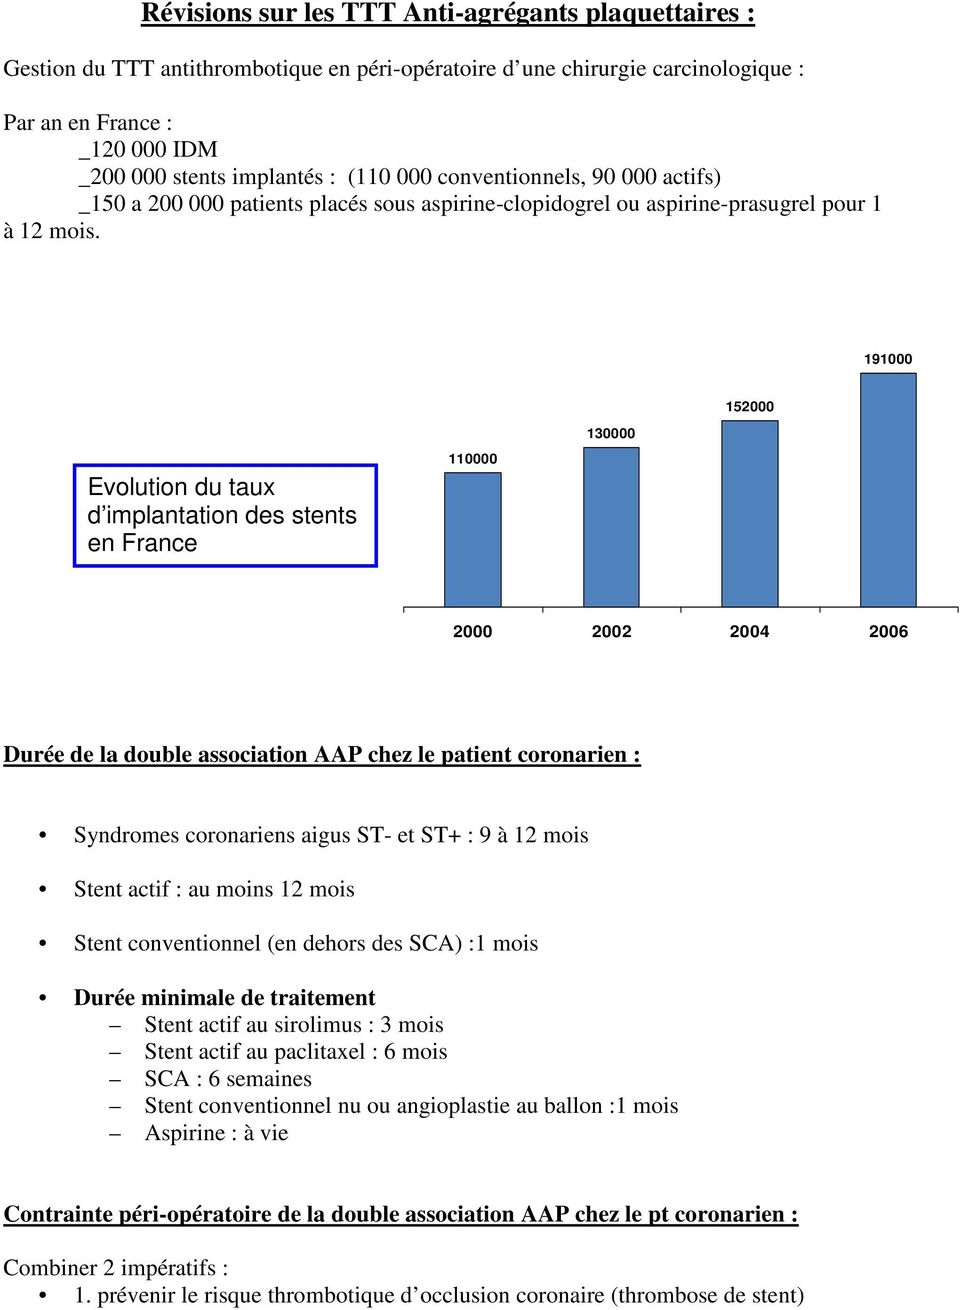 191000 152000 Evolution du taux d implantation des stents en France 110000 130000 2000 2002 2004 2006 Durée de la double association AAP chez le patient coronarien : Syndromes coronariens aigus ST-